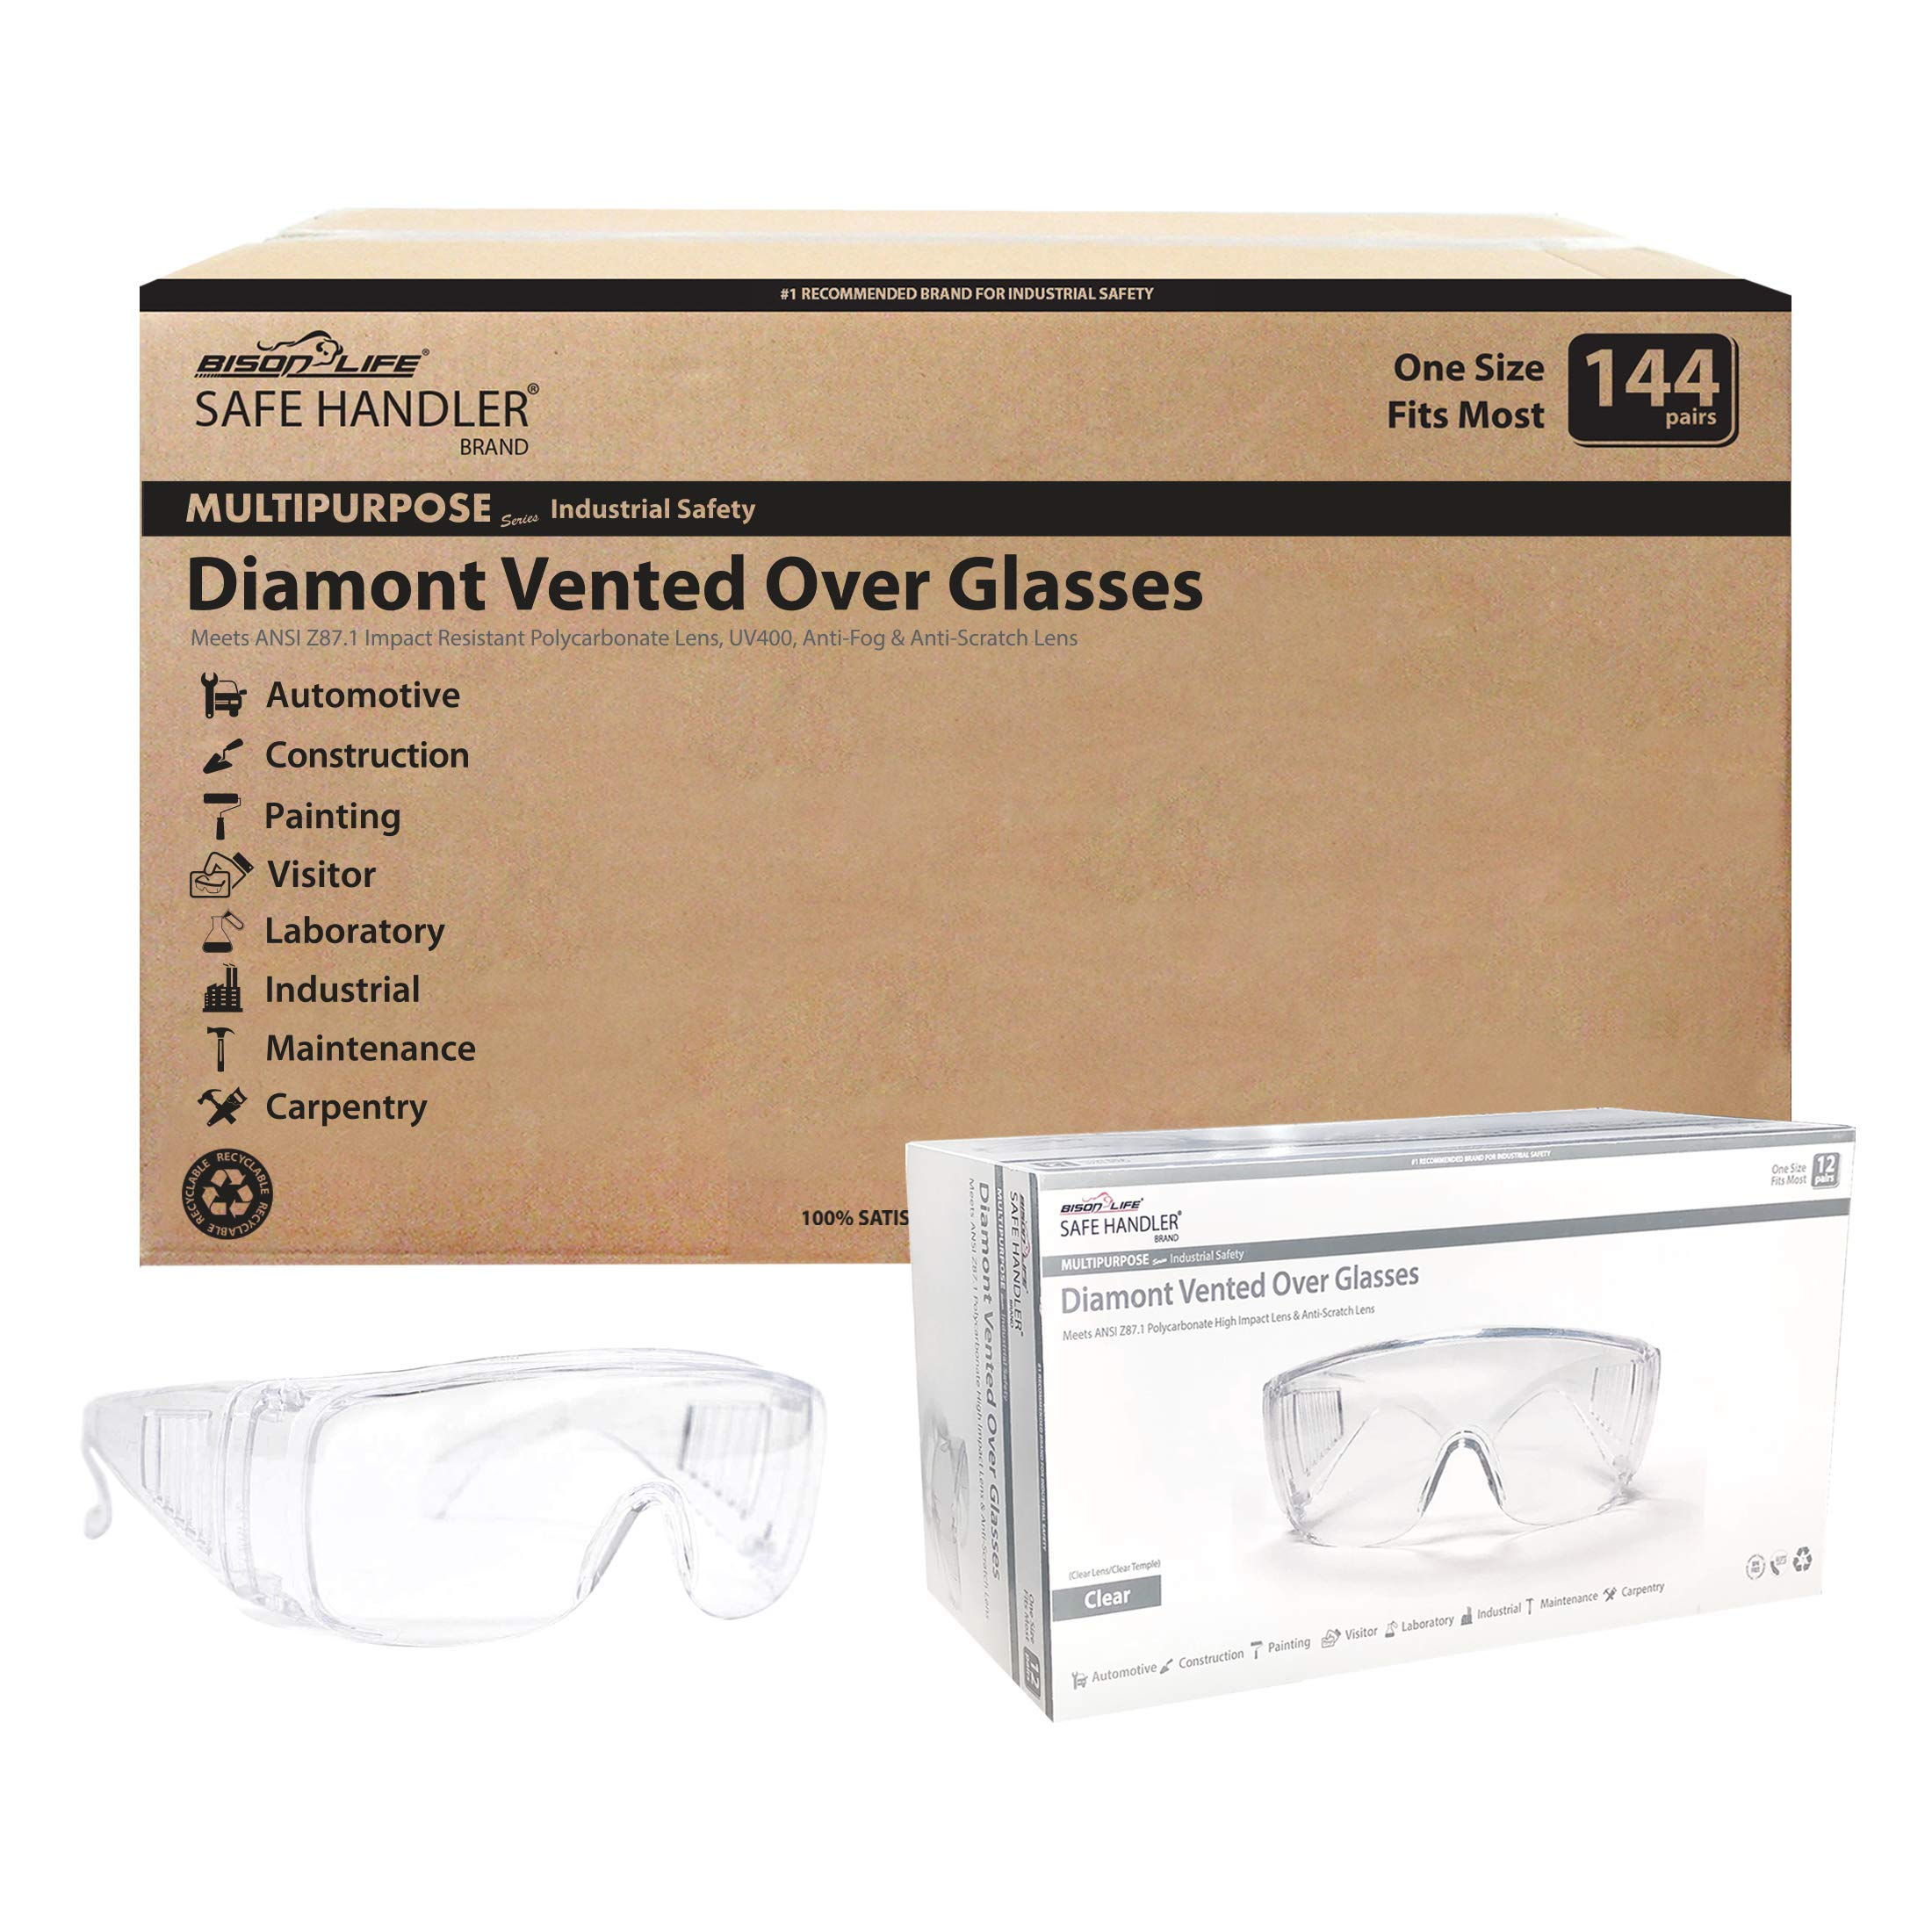 SAFE HANDLER Diamont Vented Over Glasses 144 PAIRS | Anti-Scratch, Anti-Fog, Meets ANSI Z87.1, Impact Resistant Polycarbonate Lens, 99% UV Protection